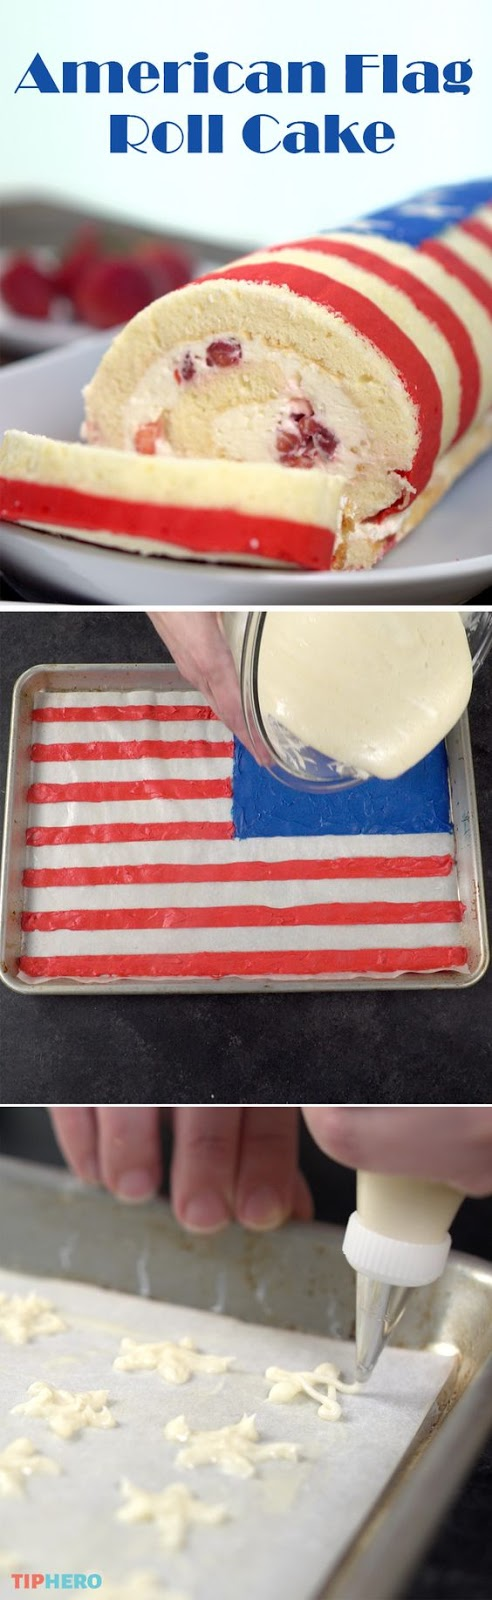 How To Make An American Flag Roll Cake For The 4th Of July